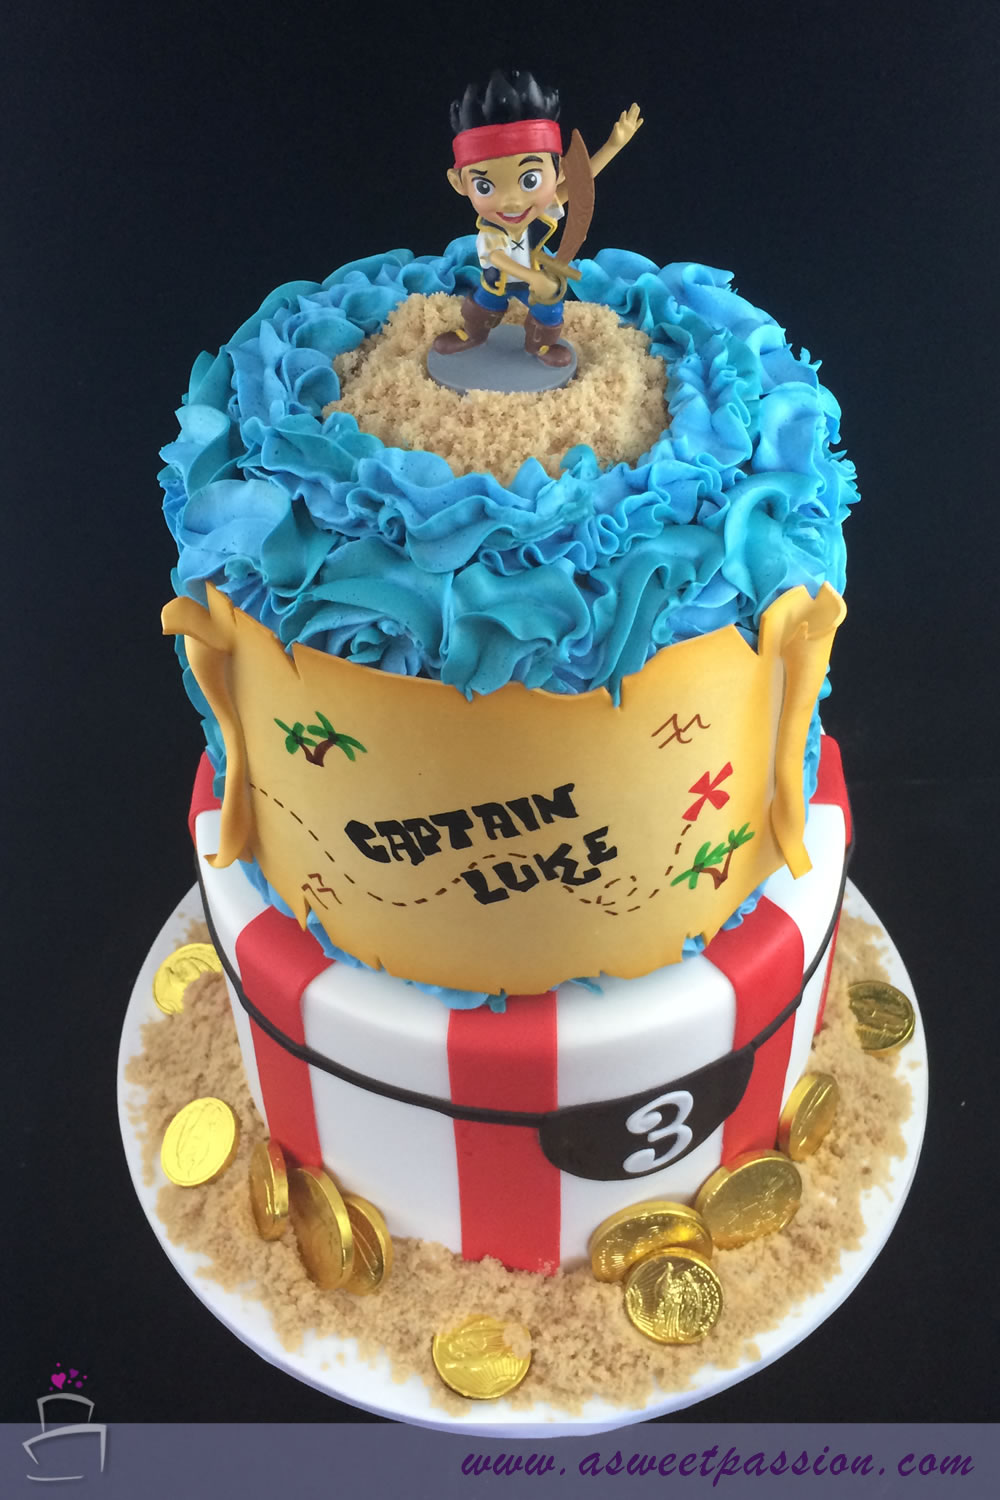 Enjoyable Jake And The Neverland Pirates Cake Sweet Passion Cakery Funny Birthday Cards Online Inifodamsfinfo